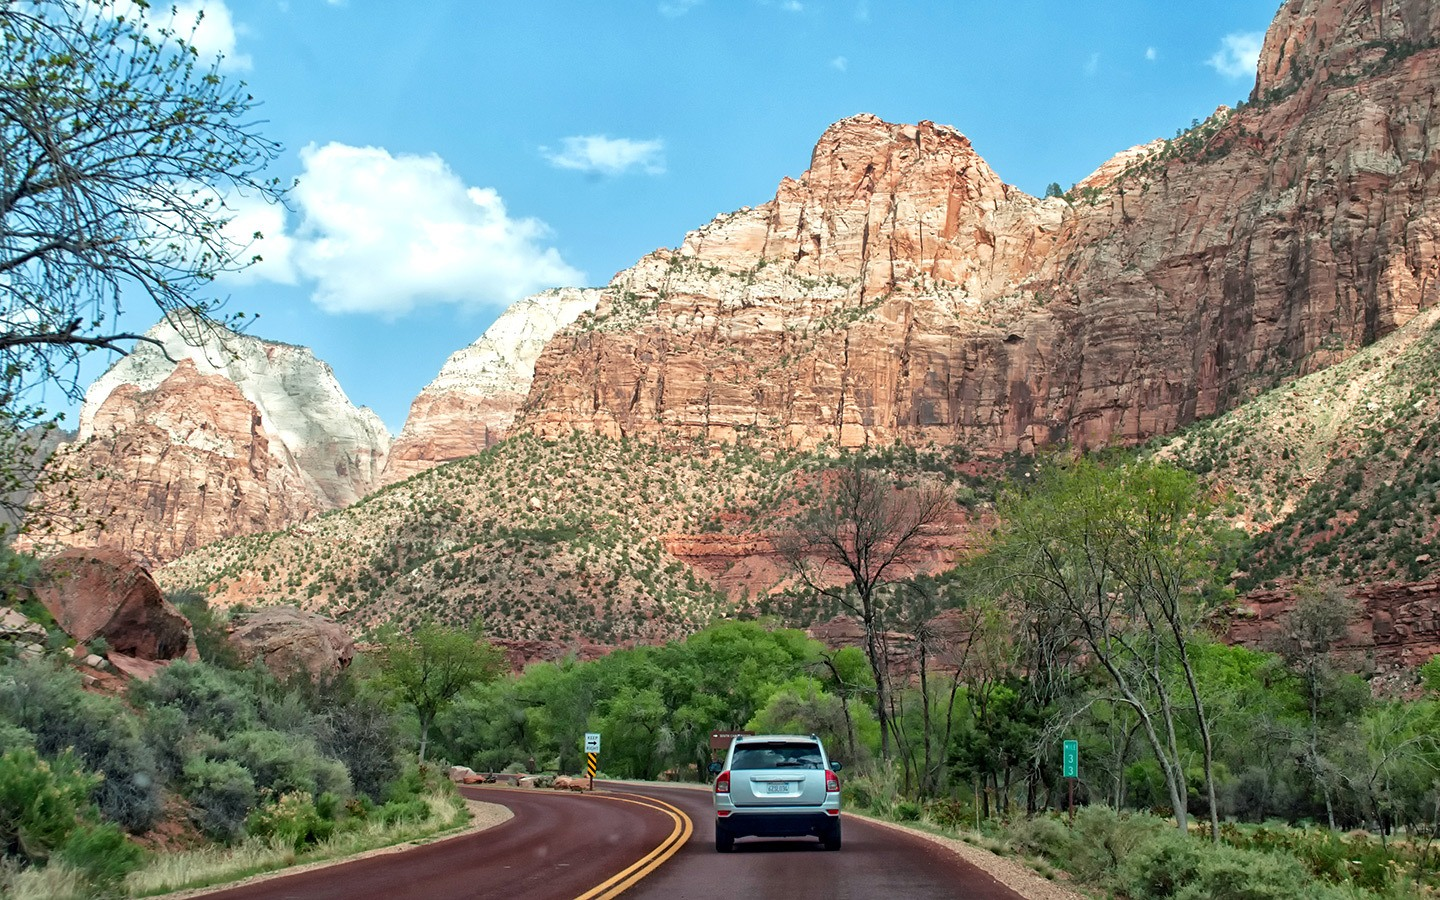 The Zion–Mount Carmel Highway scenic drive in Utah